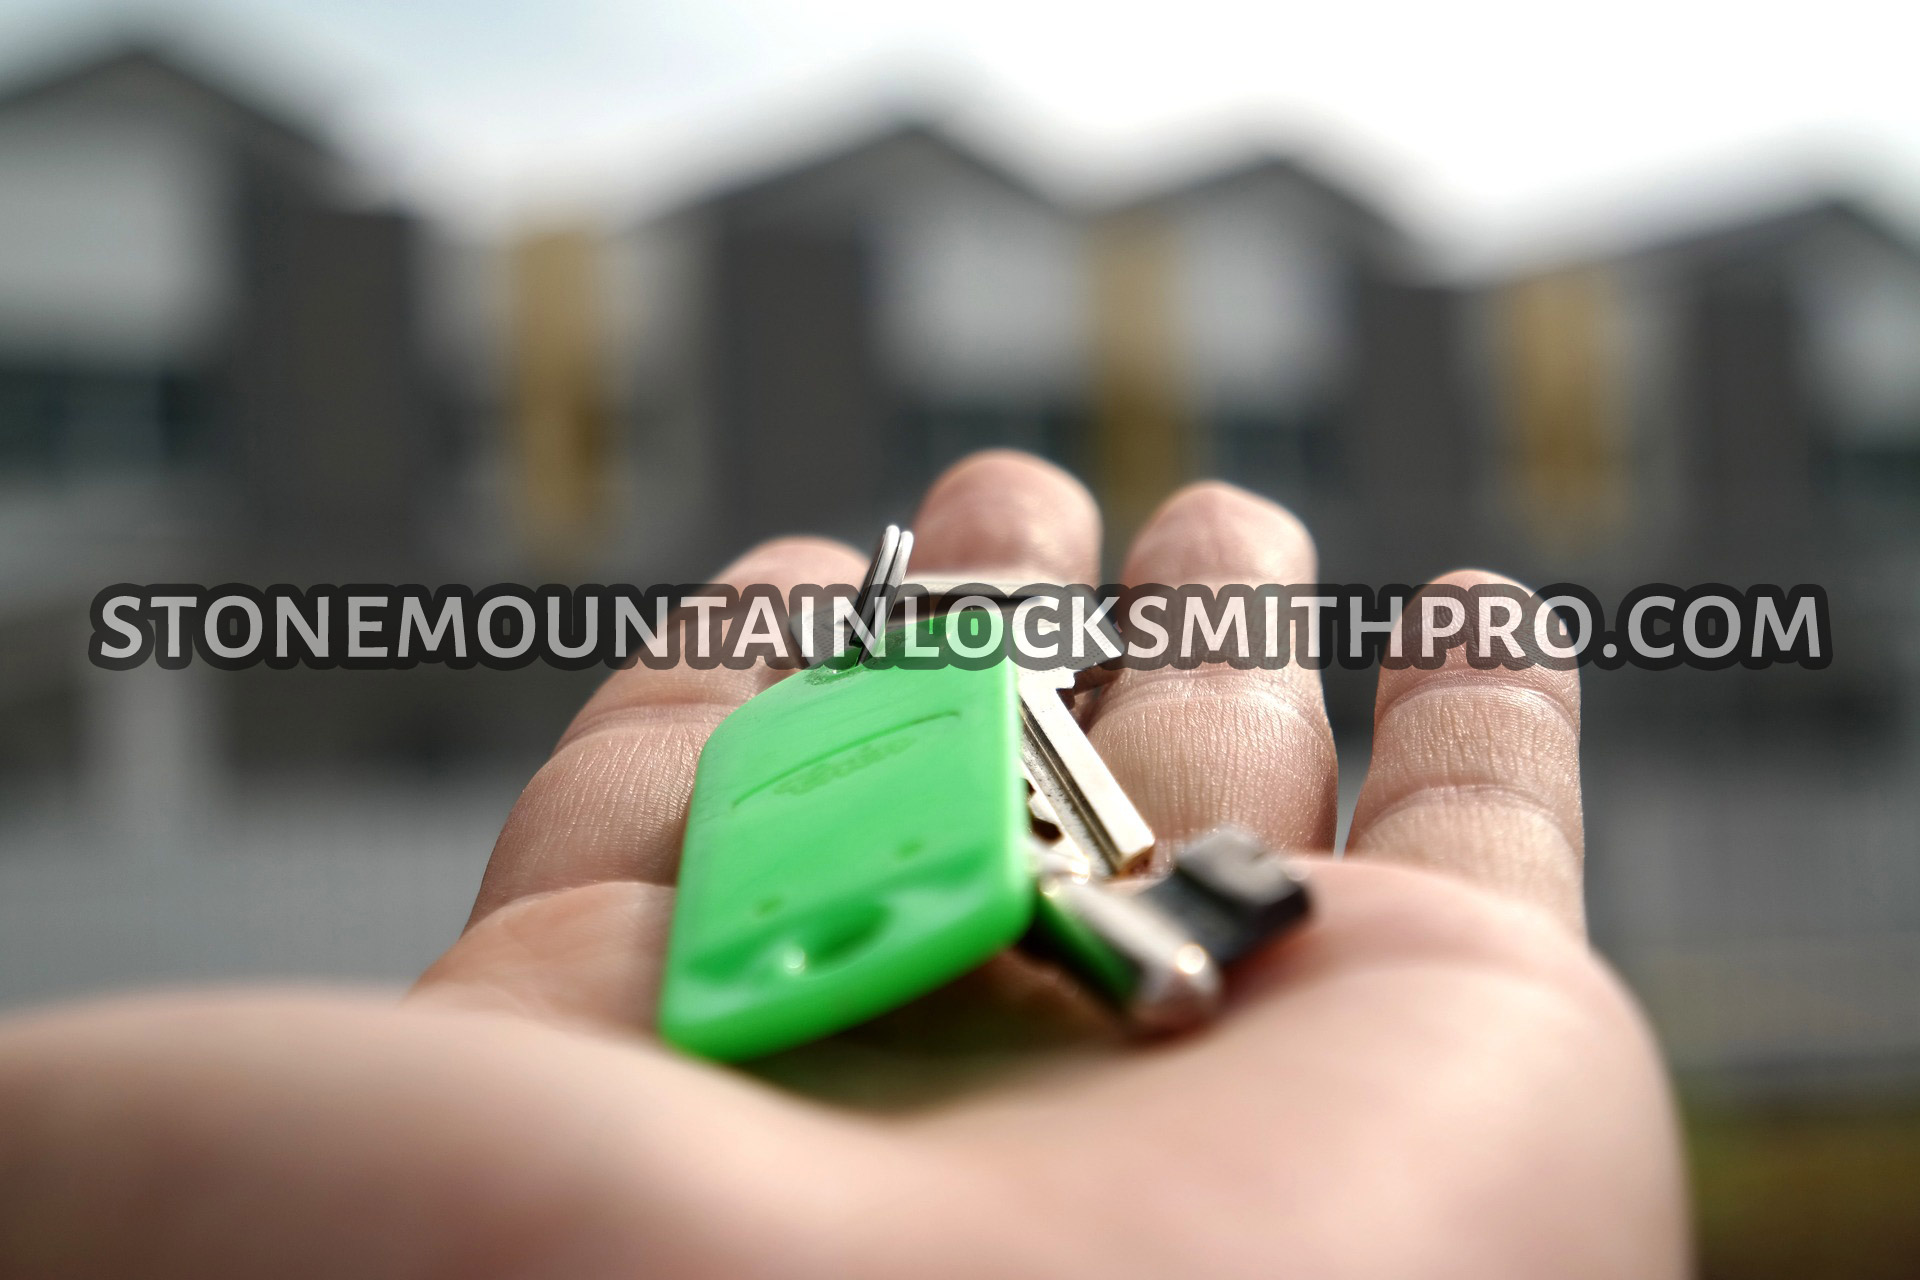 Stone Mountain Locksmith Pro